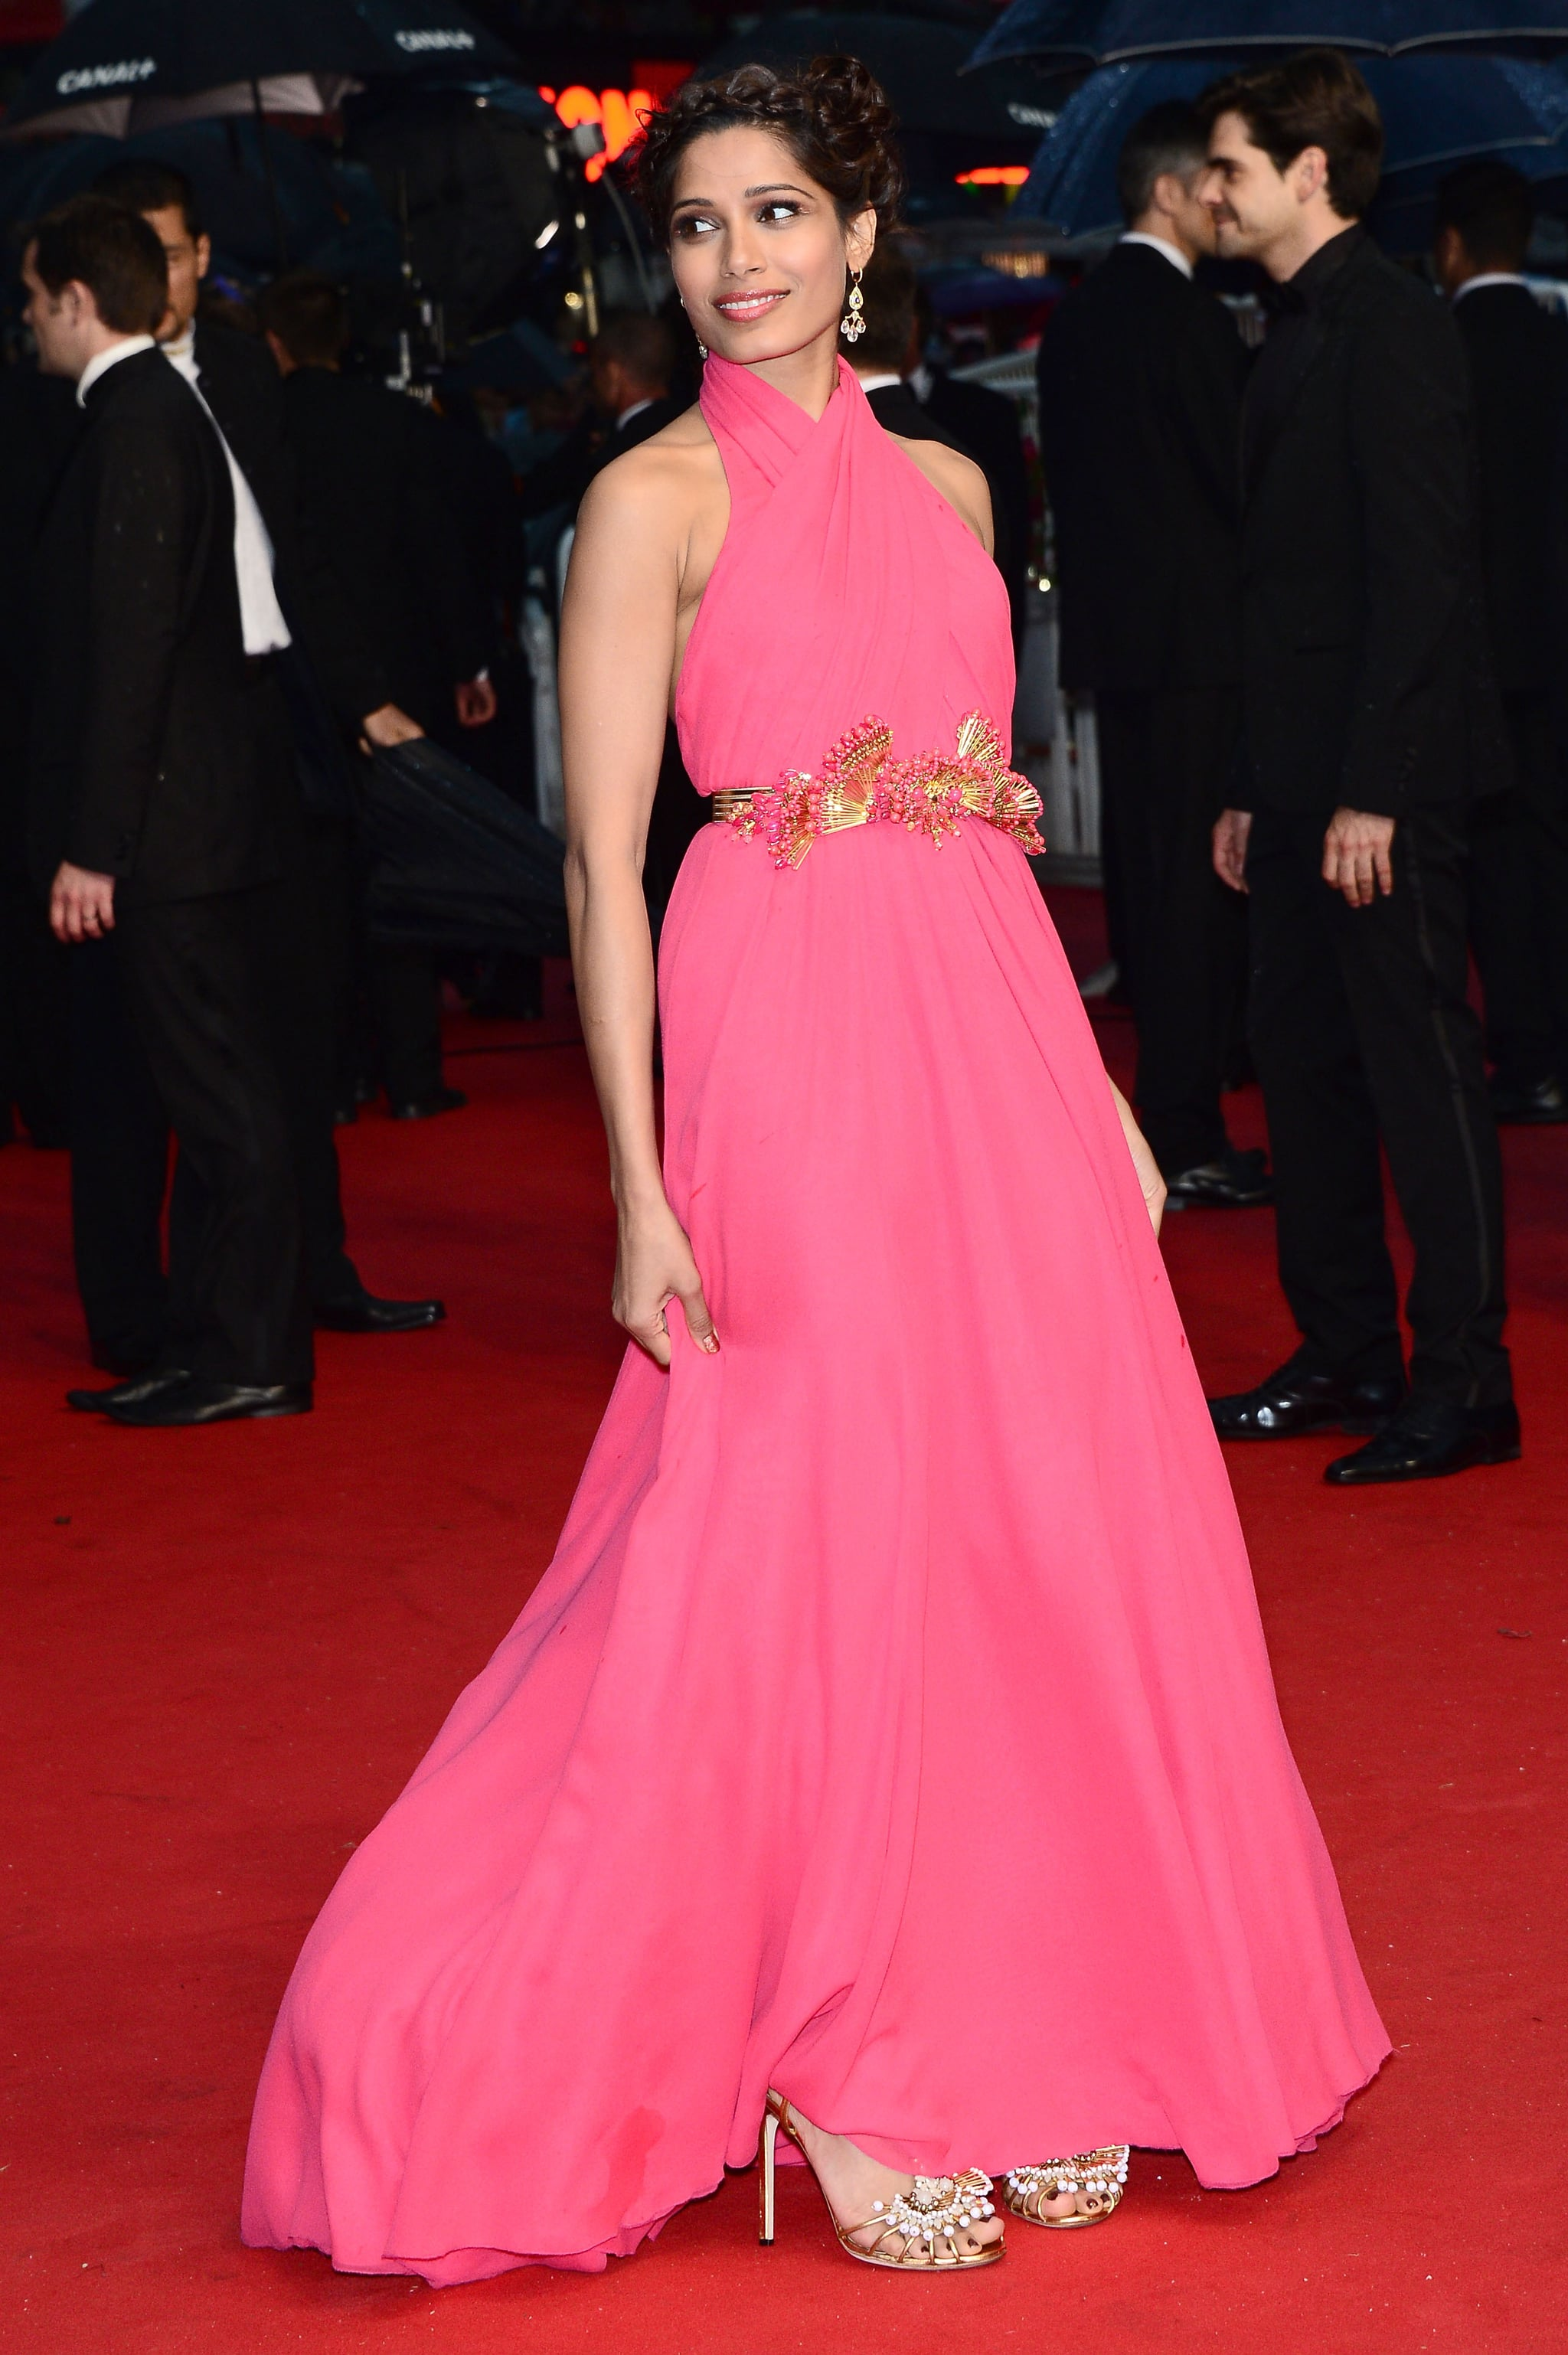 Freida Pinto looked lovely in a pink gown at the Cannes Film Festival Opening Ceremony.